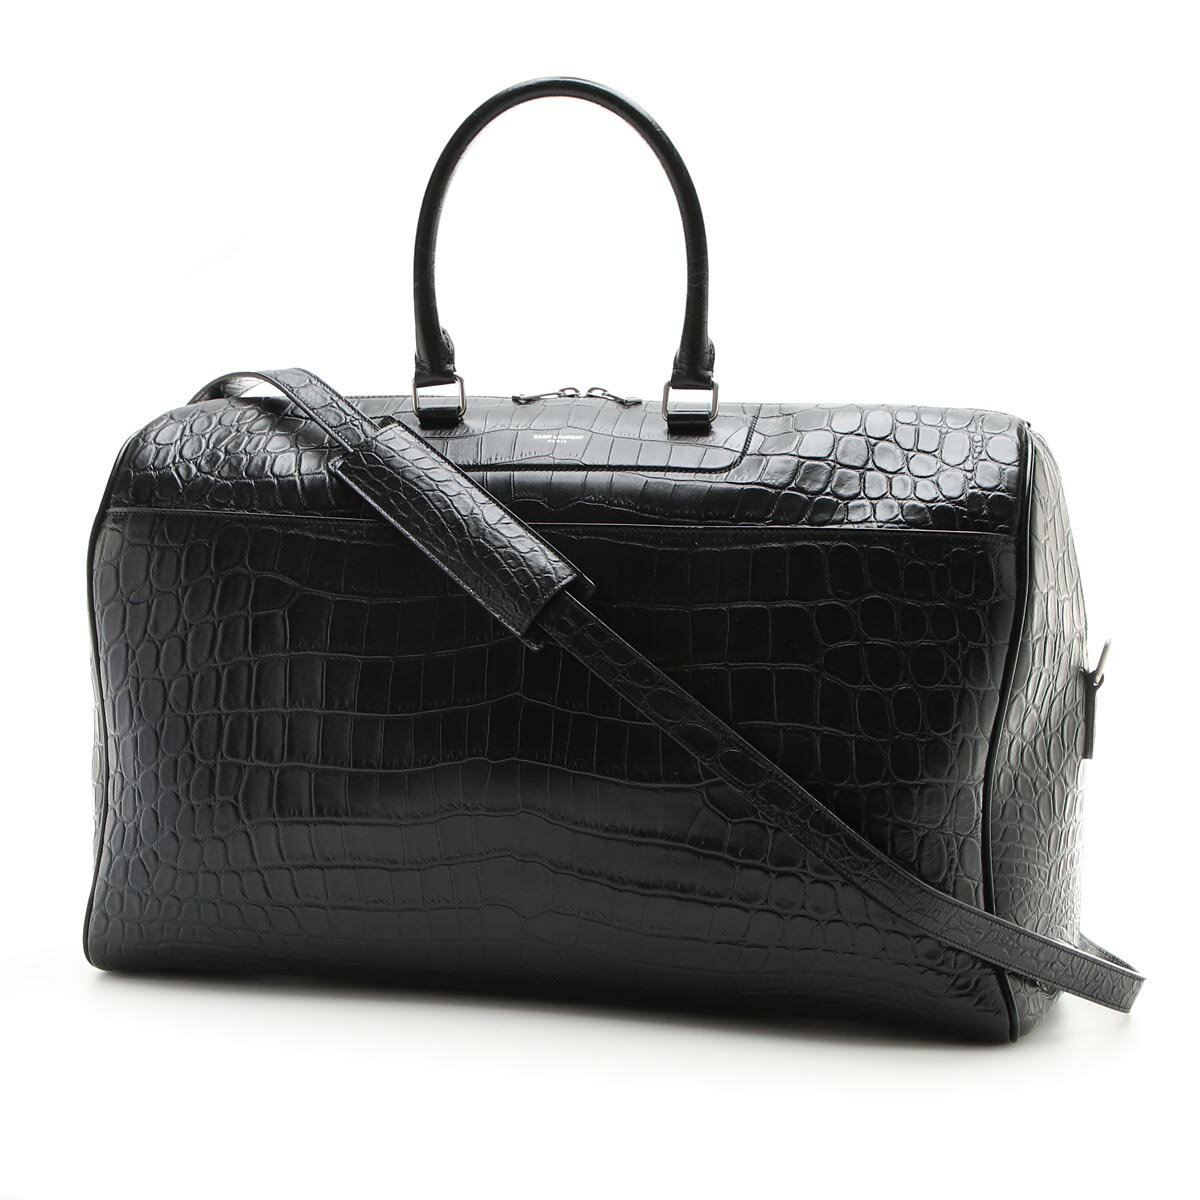 メンズバッグ, ボストンバッグ  SAINT LAURENT PARIS 533216 dze0e 1000 24-HOUR DUFFLE BAG